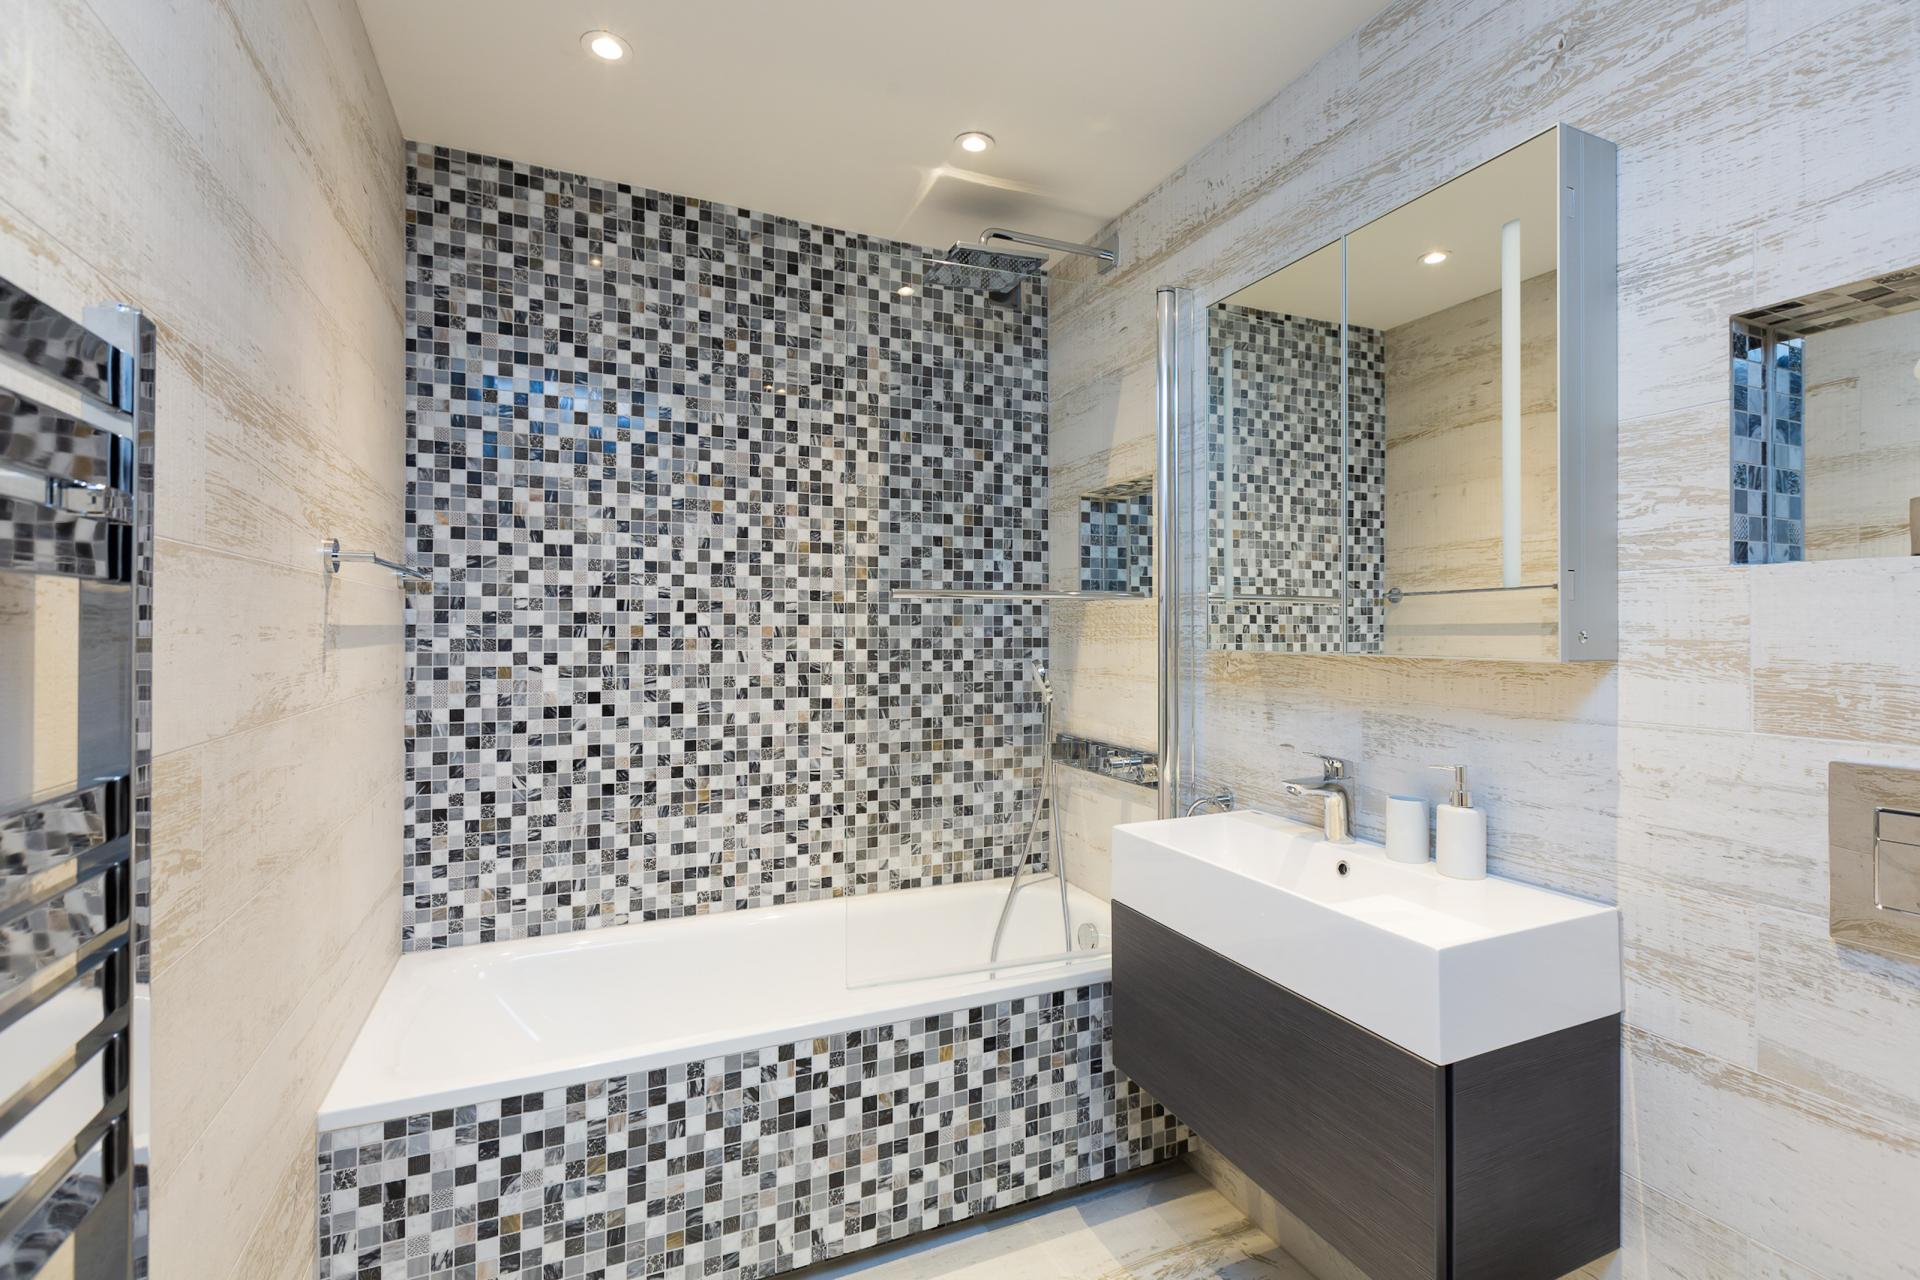 Bathroom at Fulham Serviced Apartments, Fulham, London - Citybase Apartments